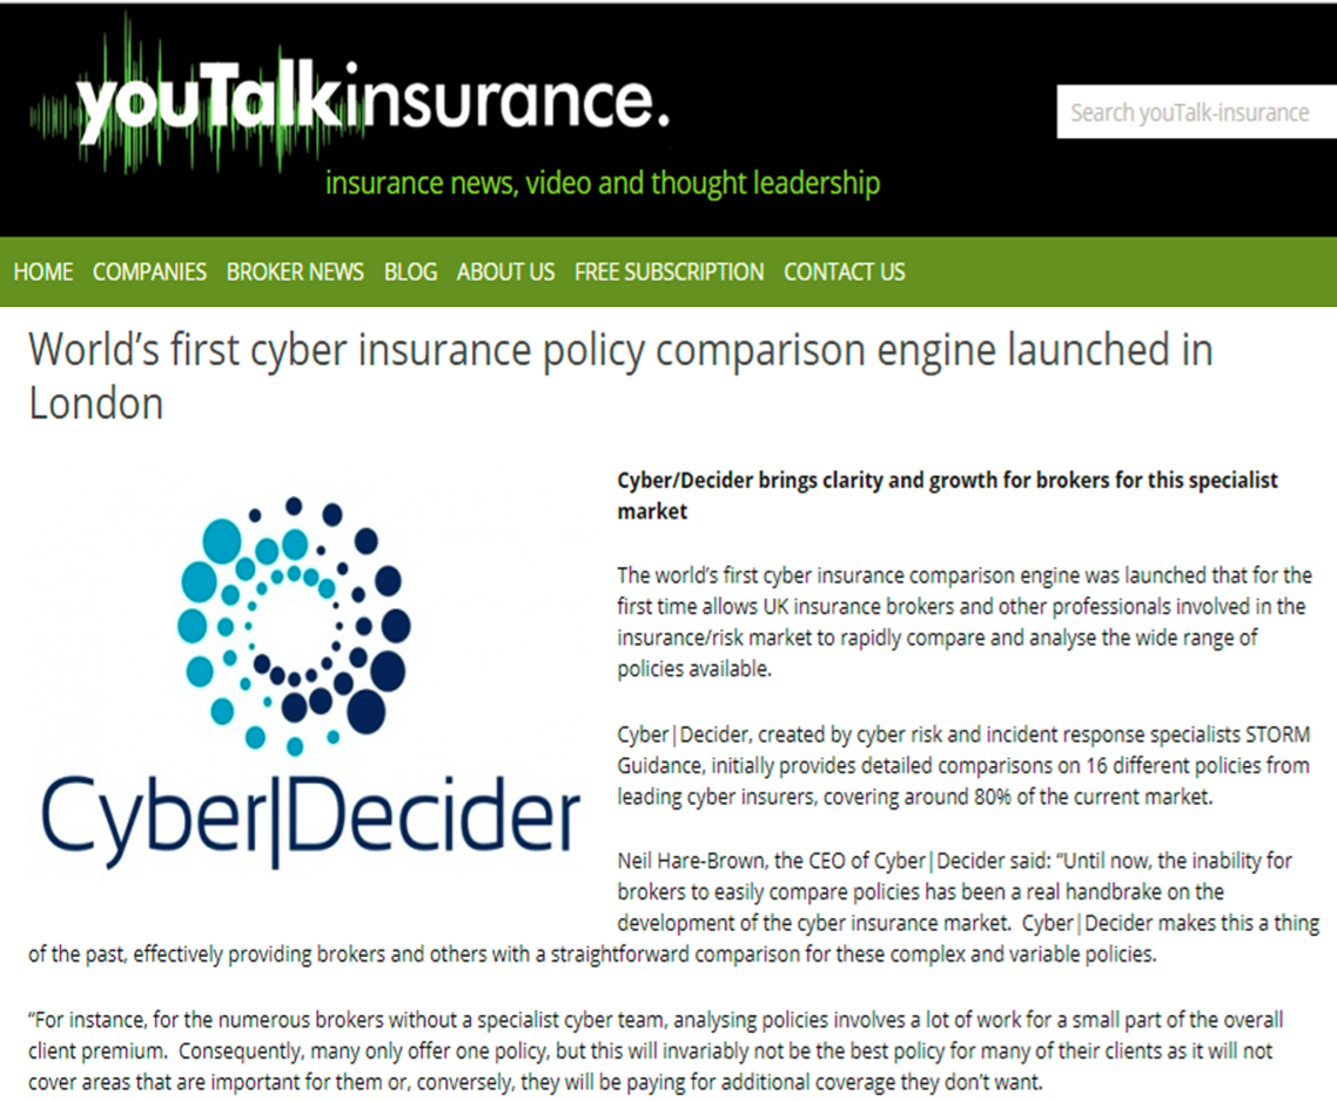 Compare Cyber Insurance Policies | Cyber|Decider